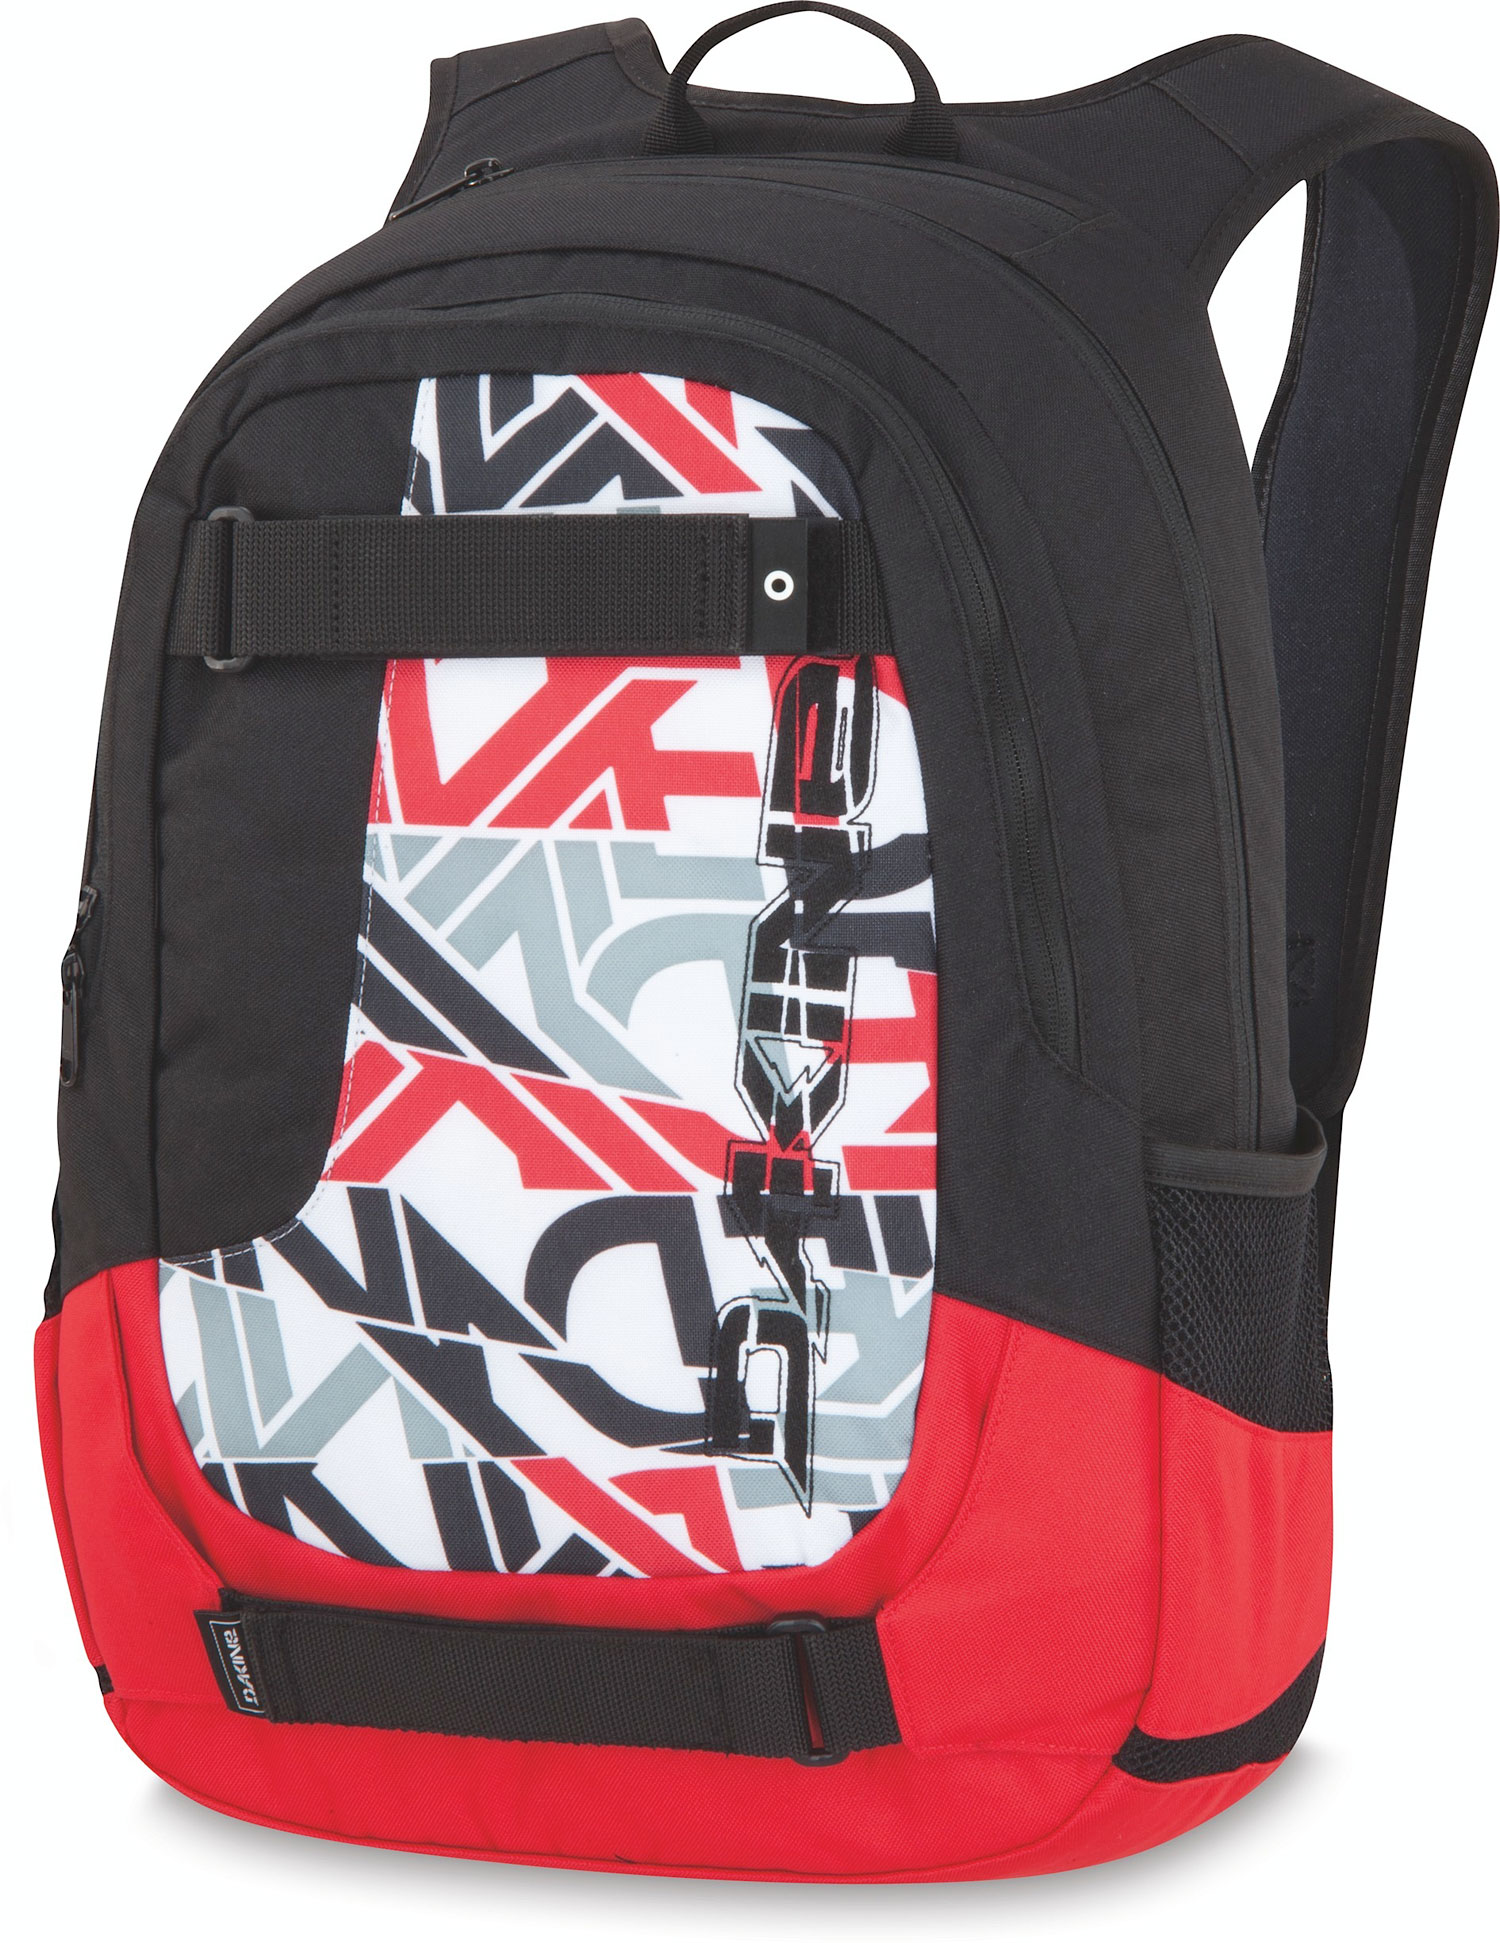 "Surf Key Features of the Dakine Division 27L Backpack: 1650 cu. in. [ 27L ] 19 x 13 x 7"" [ 49 x 33 x 18cm ] 600D Polyester Padded sleeve fits most 15"" laptops Heavy duty skate carry straps Organizer pocket Fleece lined sunglass pocket Mesh side pockets - $37.95"